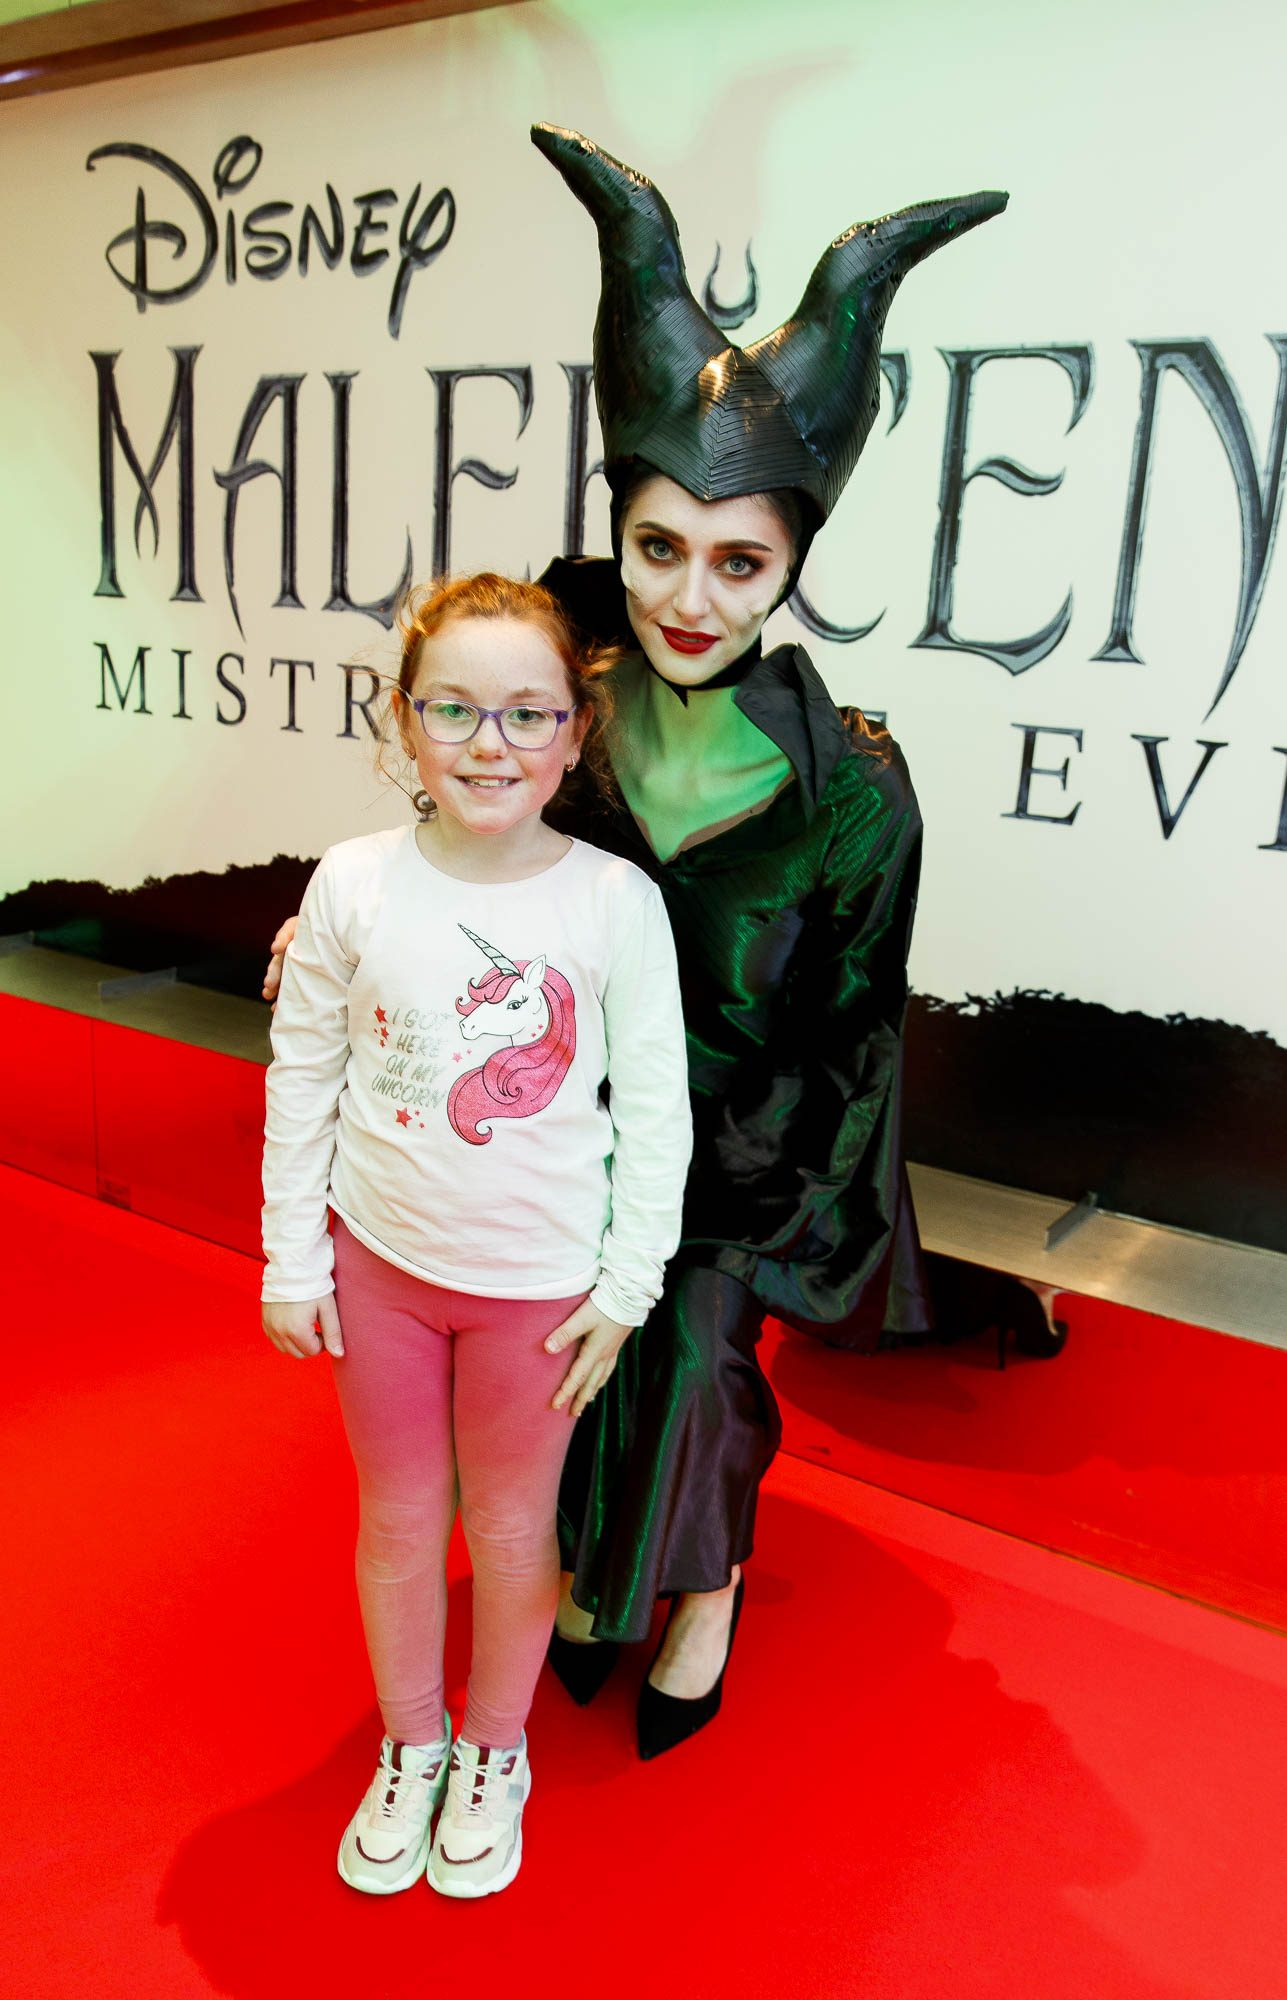 Preview Screening Of Maleficent Mistress Of Evil At The